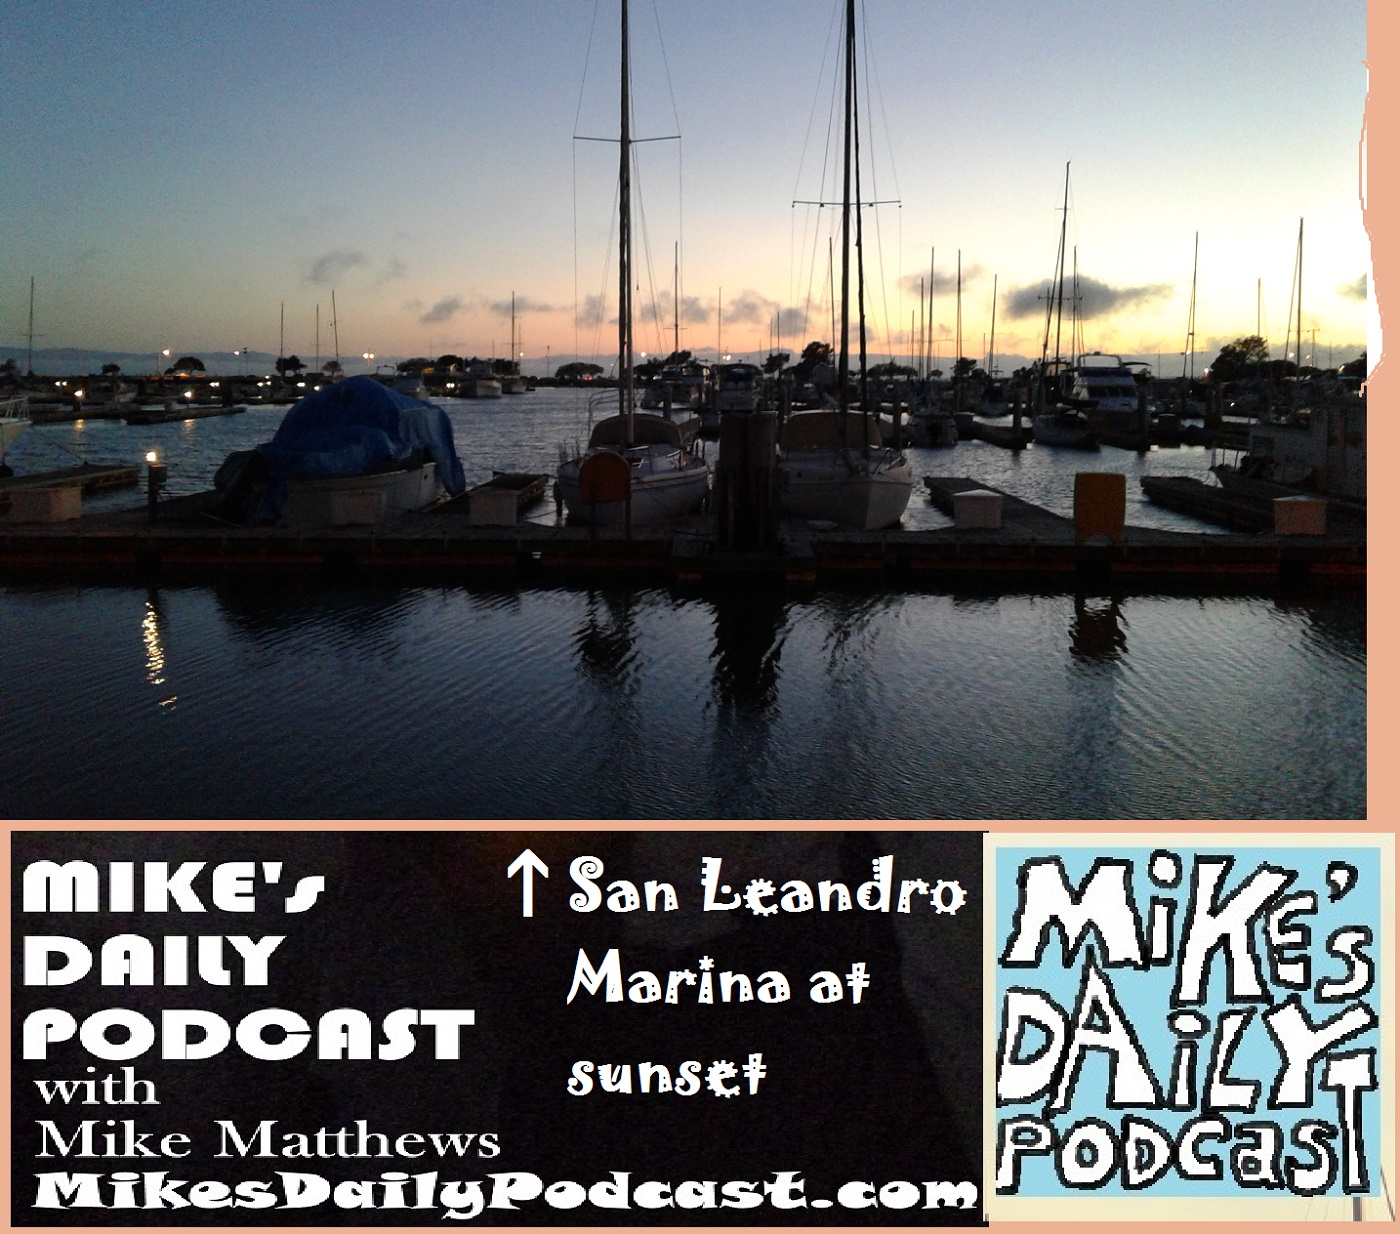 MIKEs DAILY PODCAST 1135 San Leandro Marina sunset